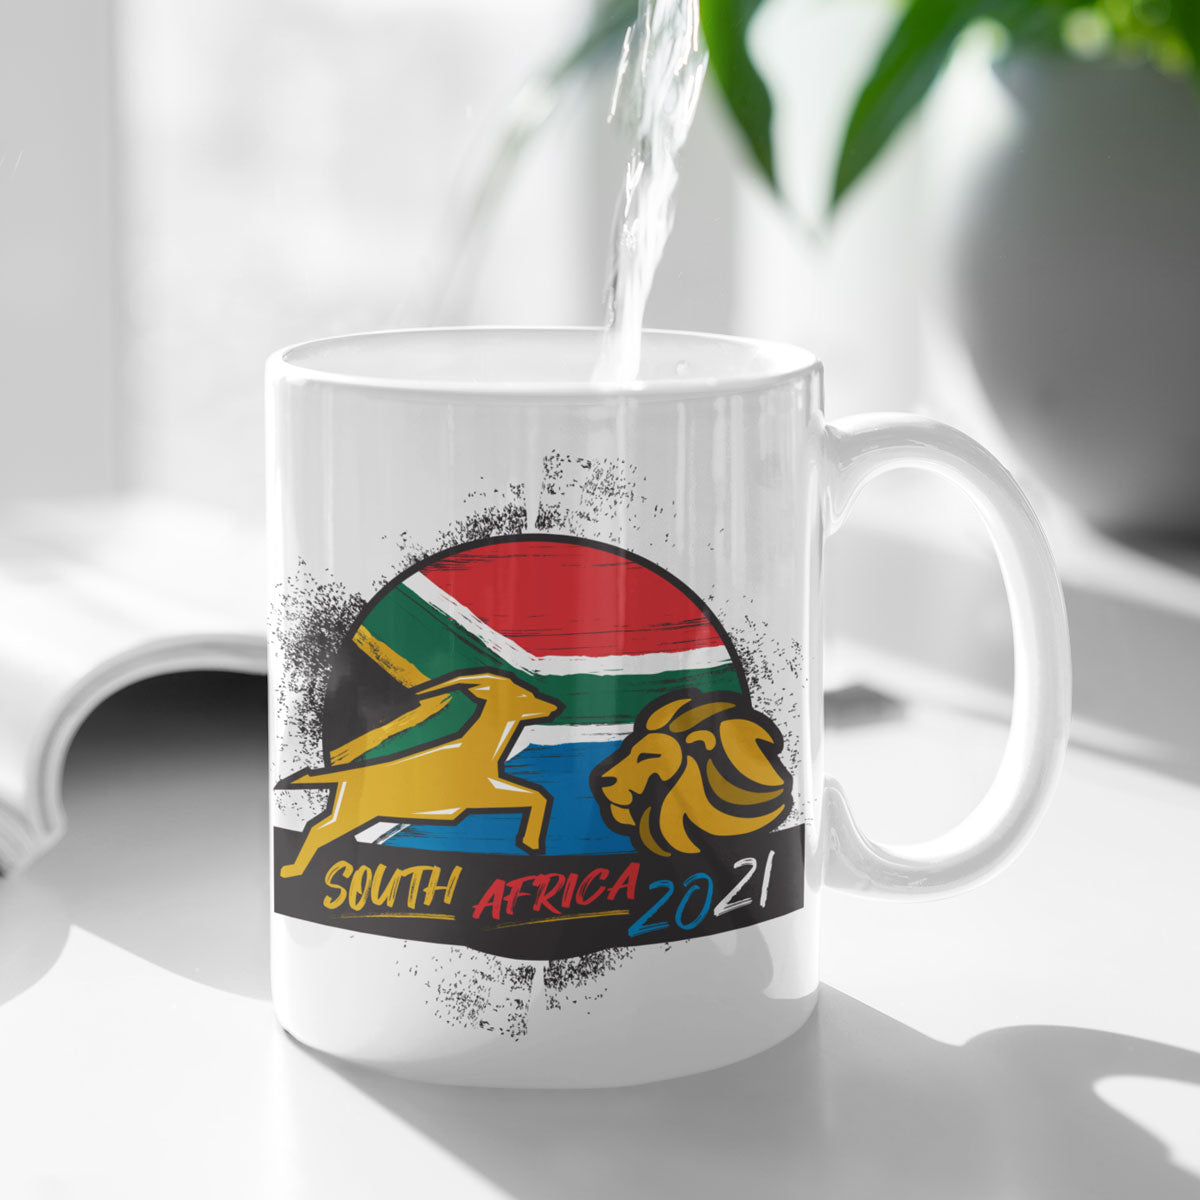 South Africa 2021 Rugby Mug - First XV rugbystuff.com